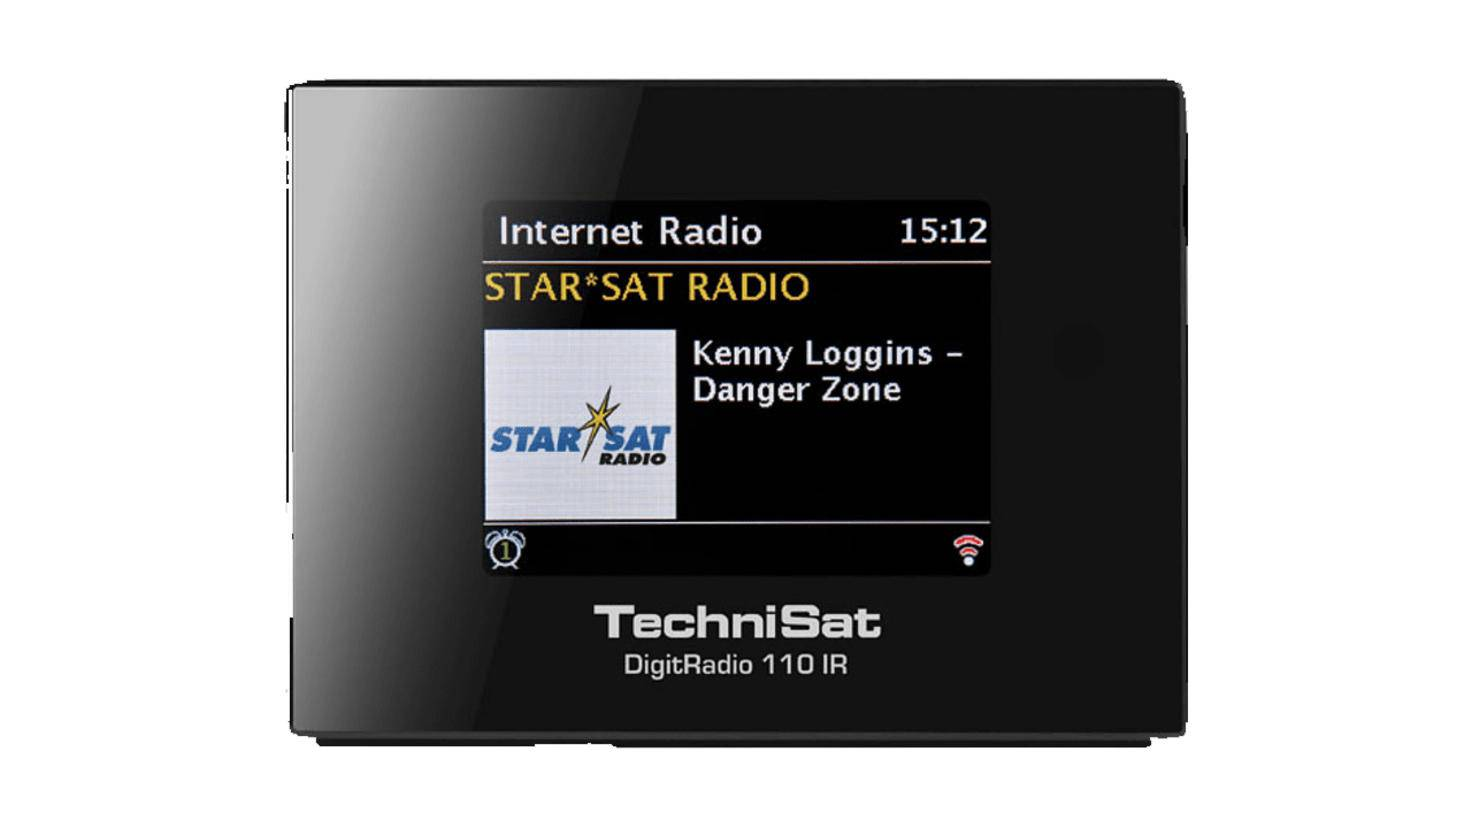 TechniSat Digitradio 110 IR Internetradio